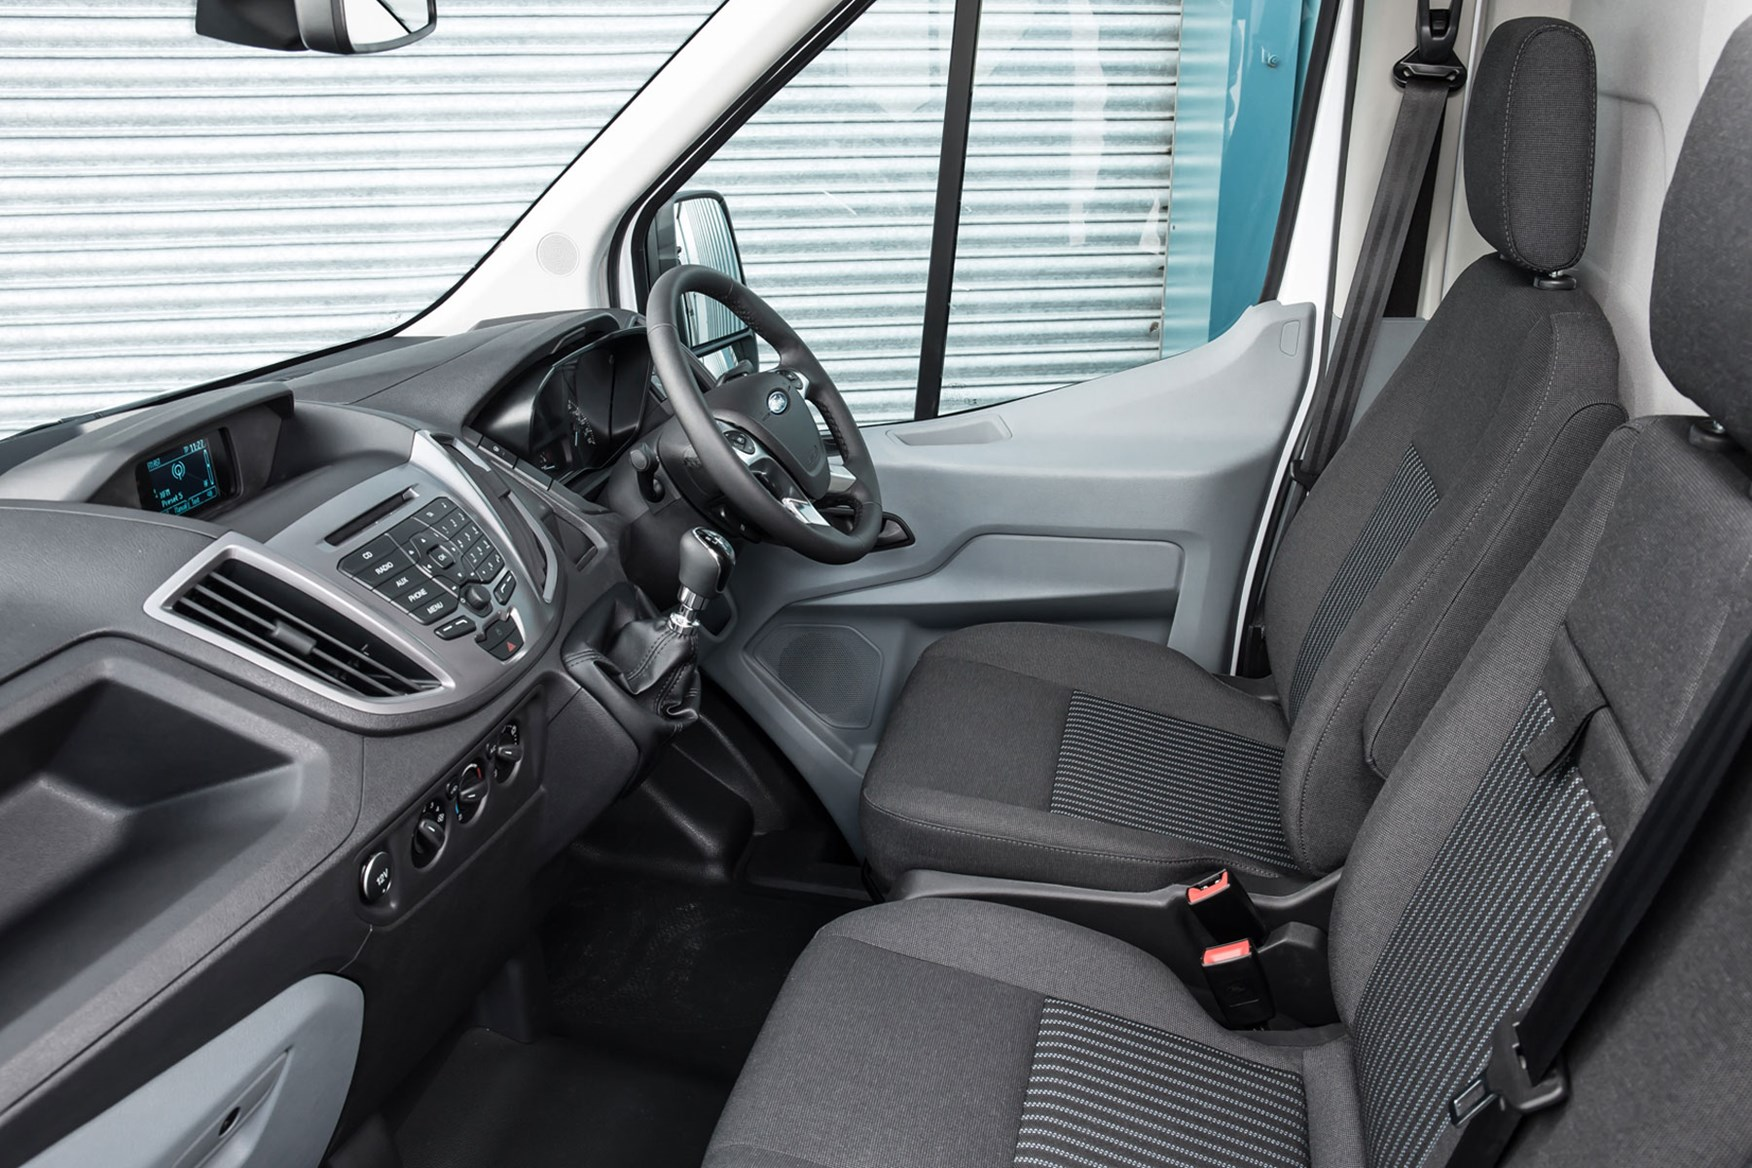 Ford Transit RWD Trend review - cab interior